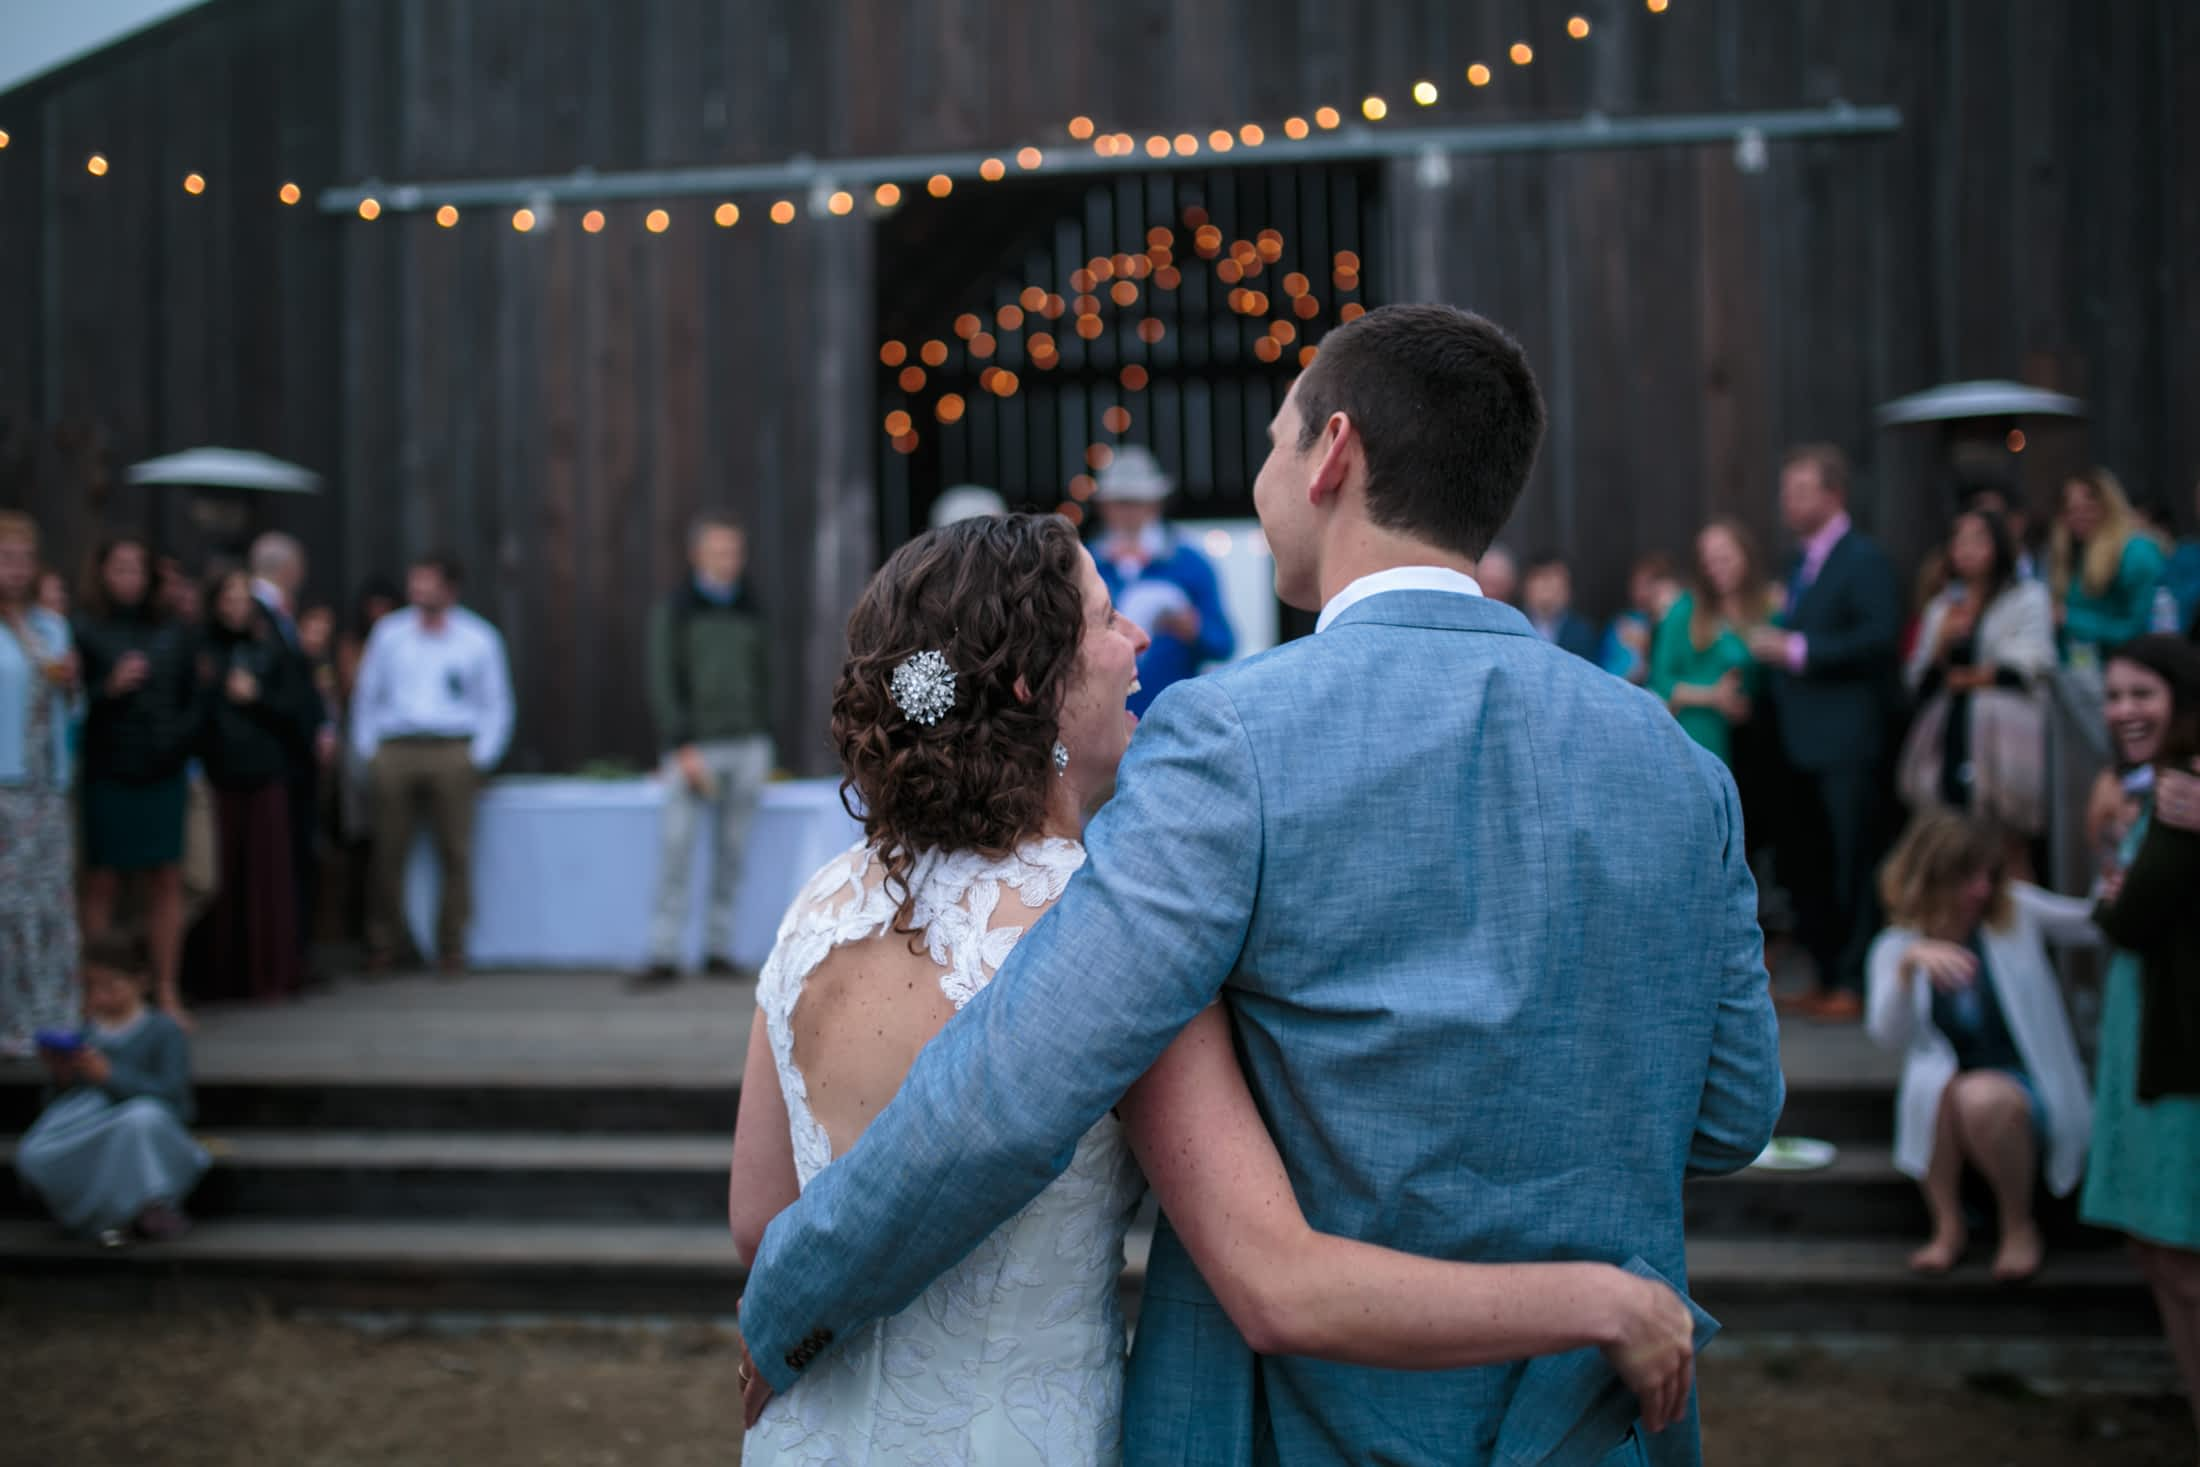 The barn at Cuffey's Cove is lit up with Christmas lights, inside and out. The bride and groom stand outside laughing with their arms around each other.